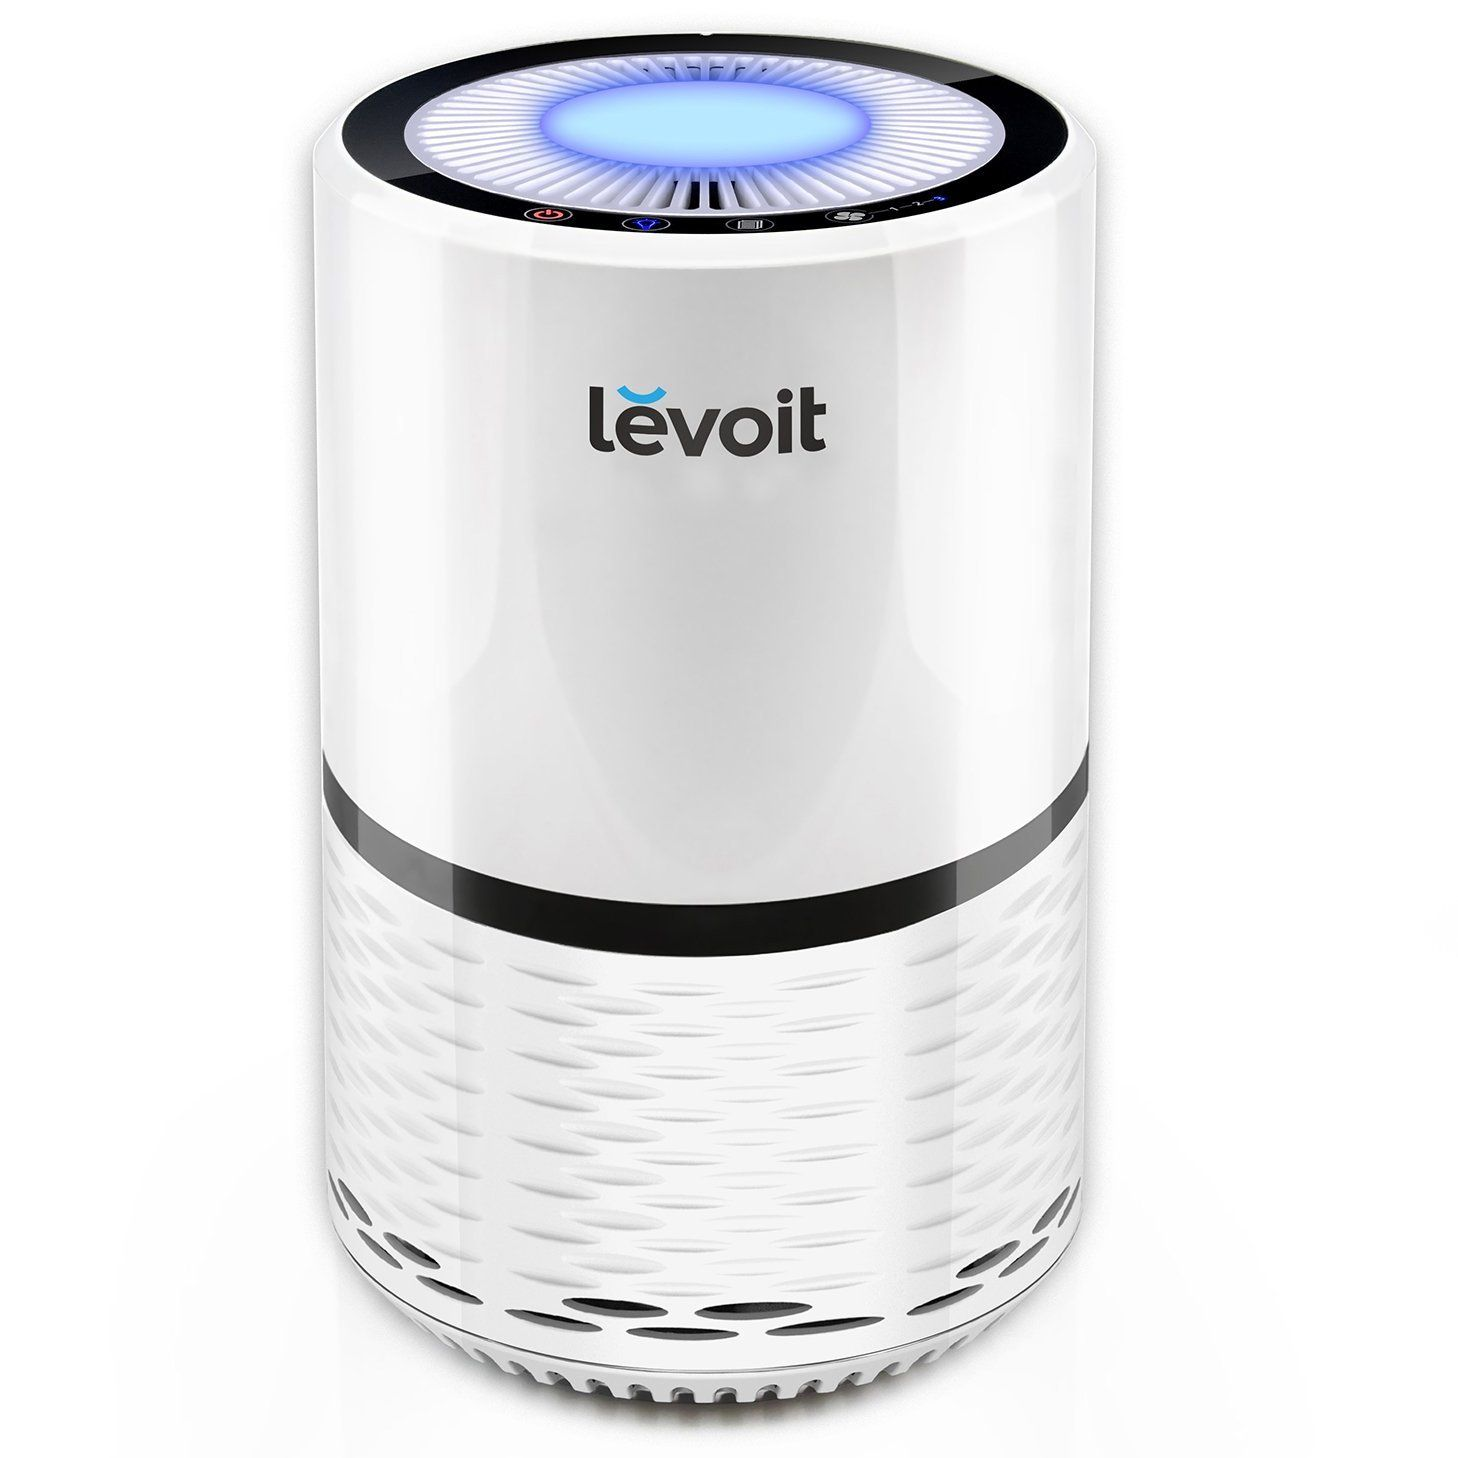 Levoit Air Purifier Filtration with True HEPA